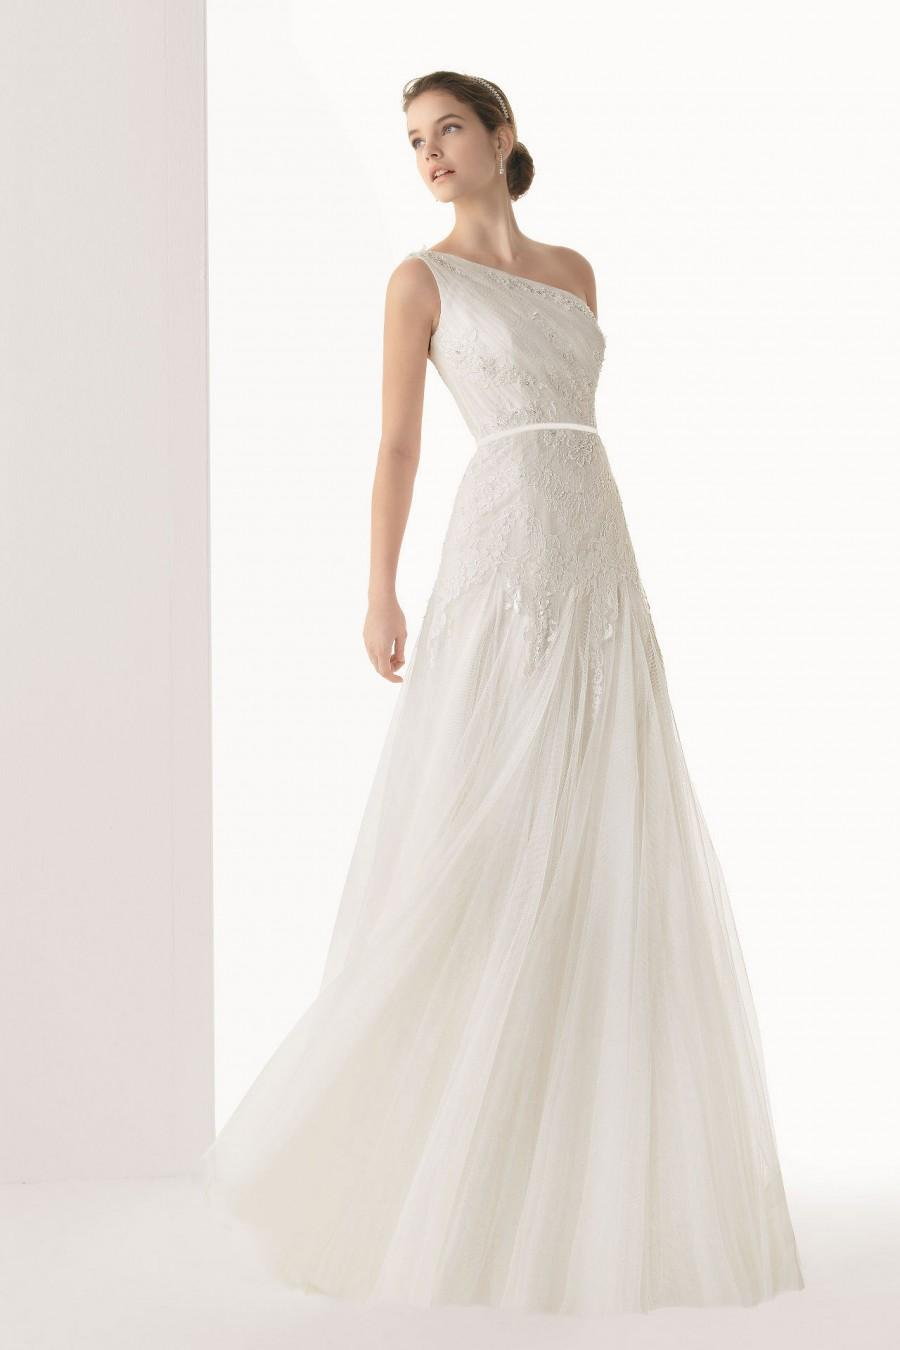 Wedding - Elegant One Shoulder Appliques Tulle Floor Length Wedding Dress UK